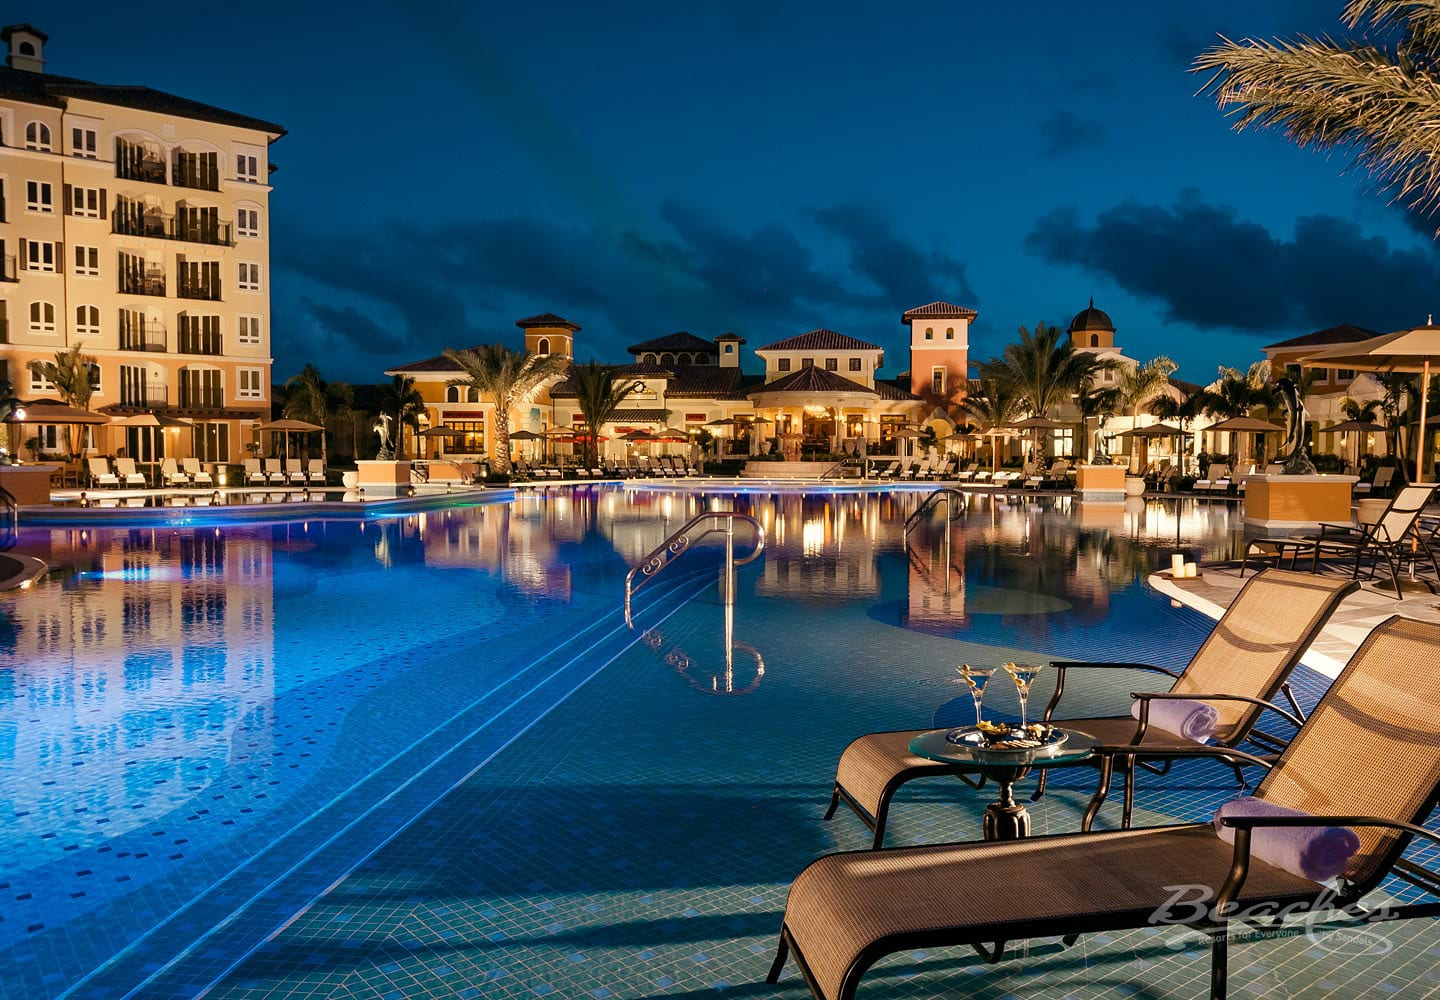 lounge chairs on a pool in front of a luxury resort, luxury all inclusive vacation packages